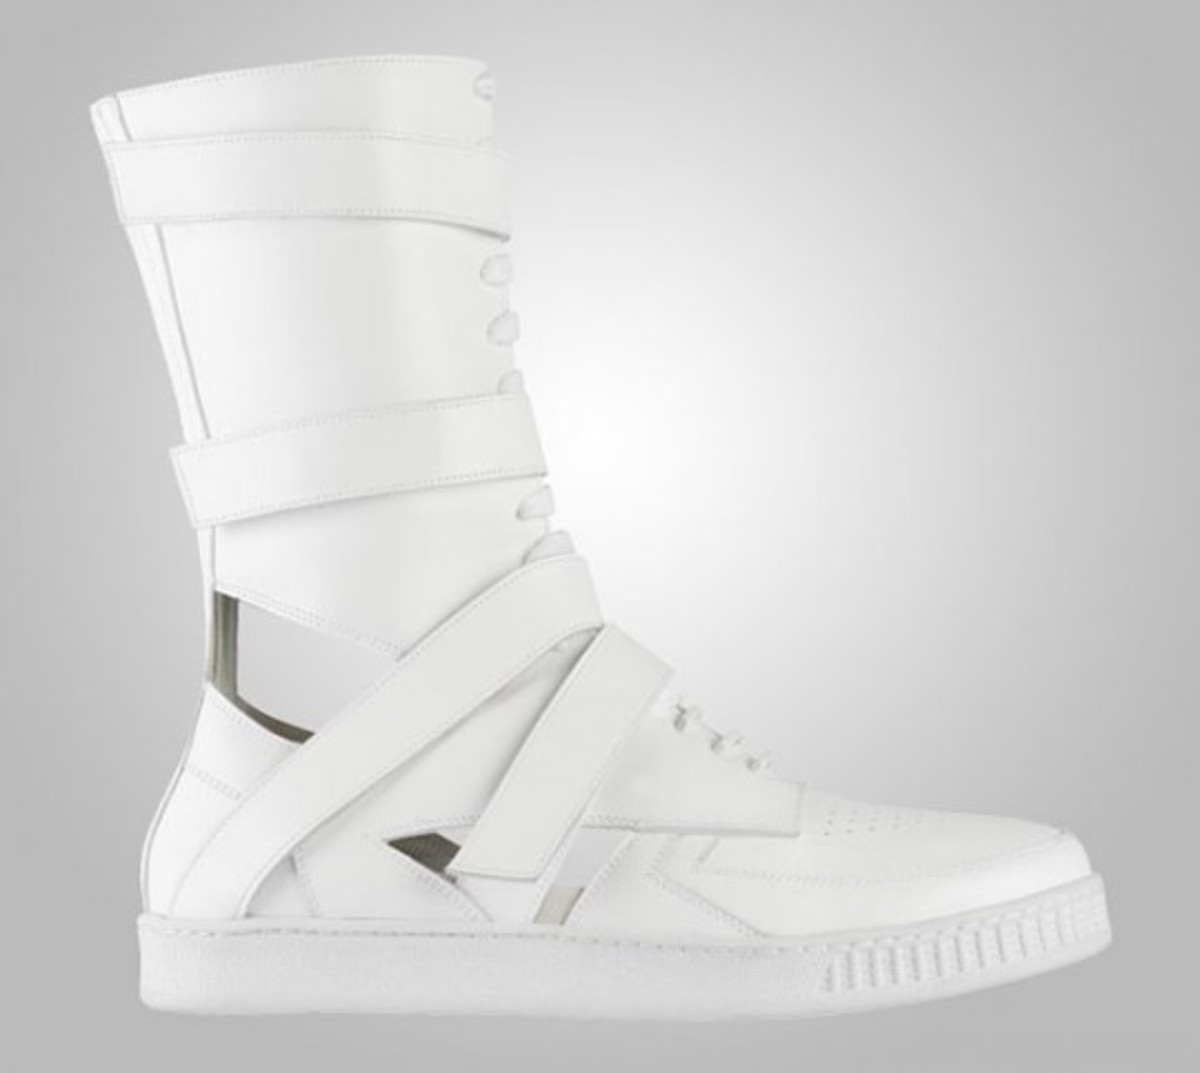 givenchy_ss10_sneakers_2